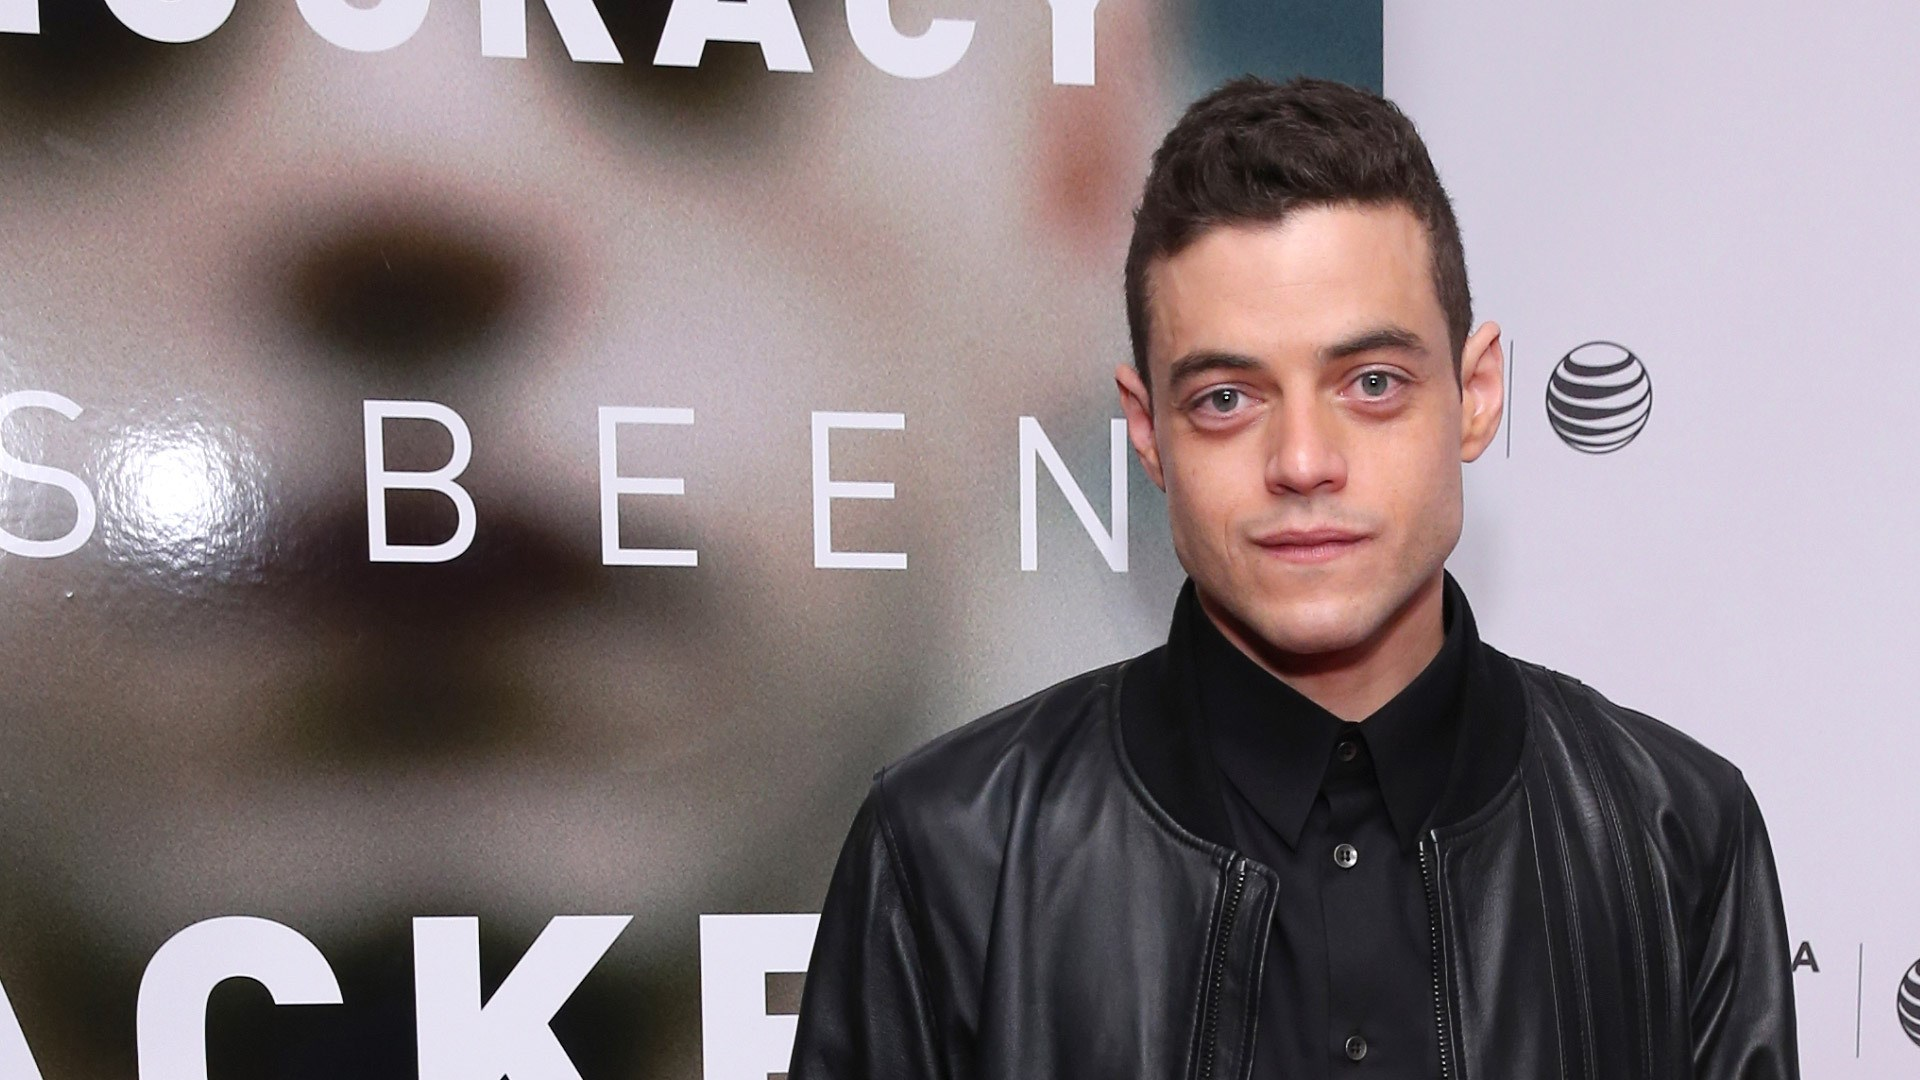 rami-malek-1080p-high-quality-Stan-London-wallpaper-wp3809706